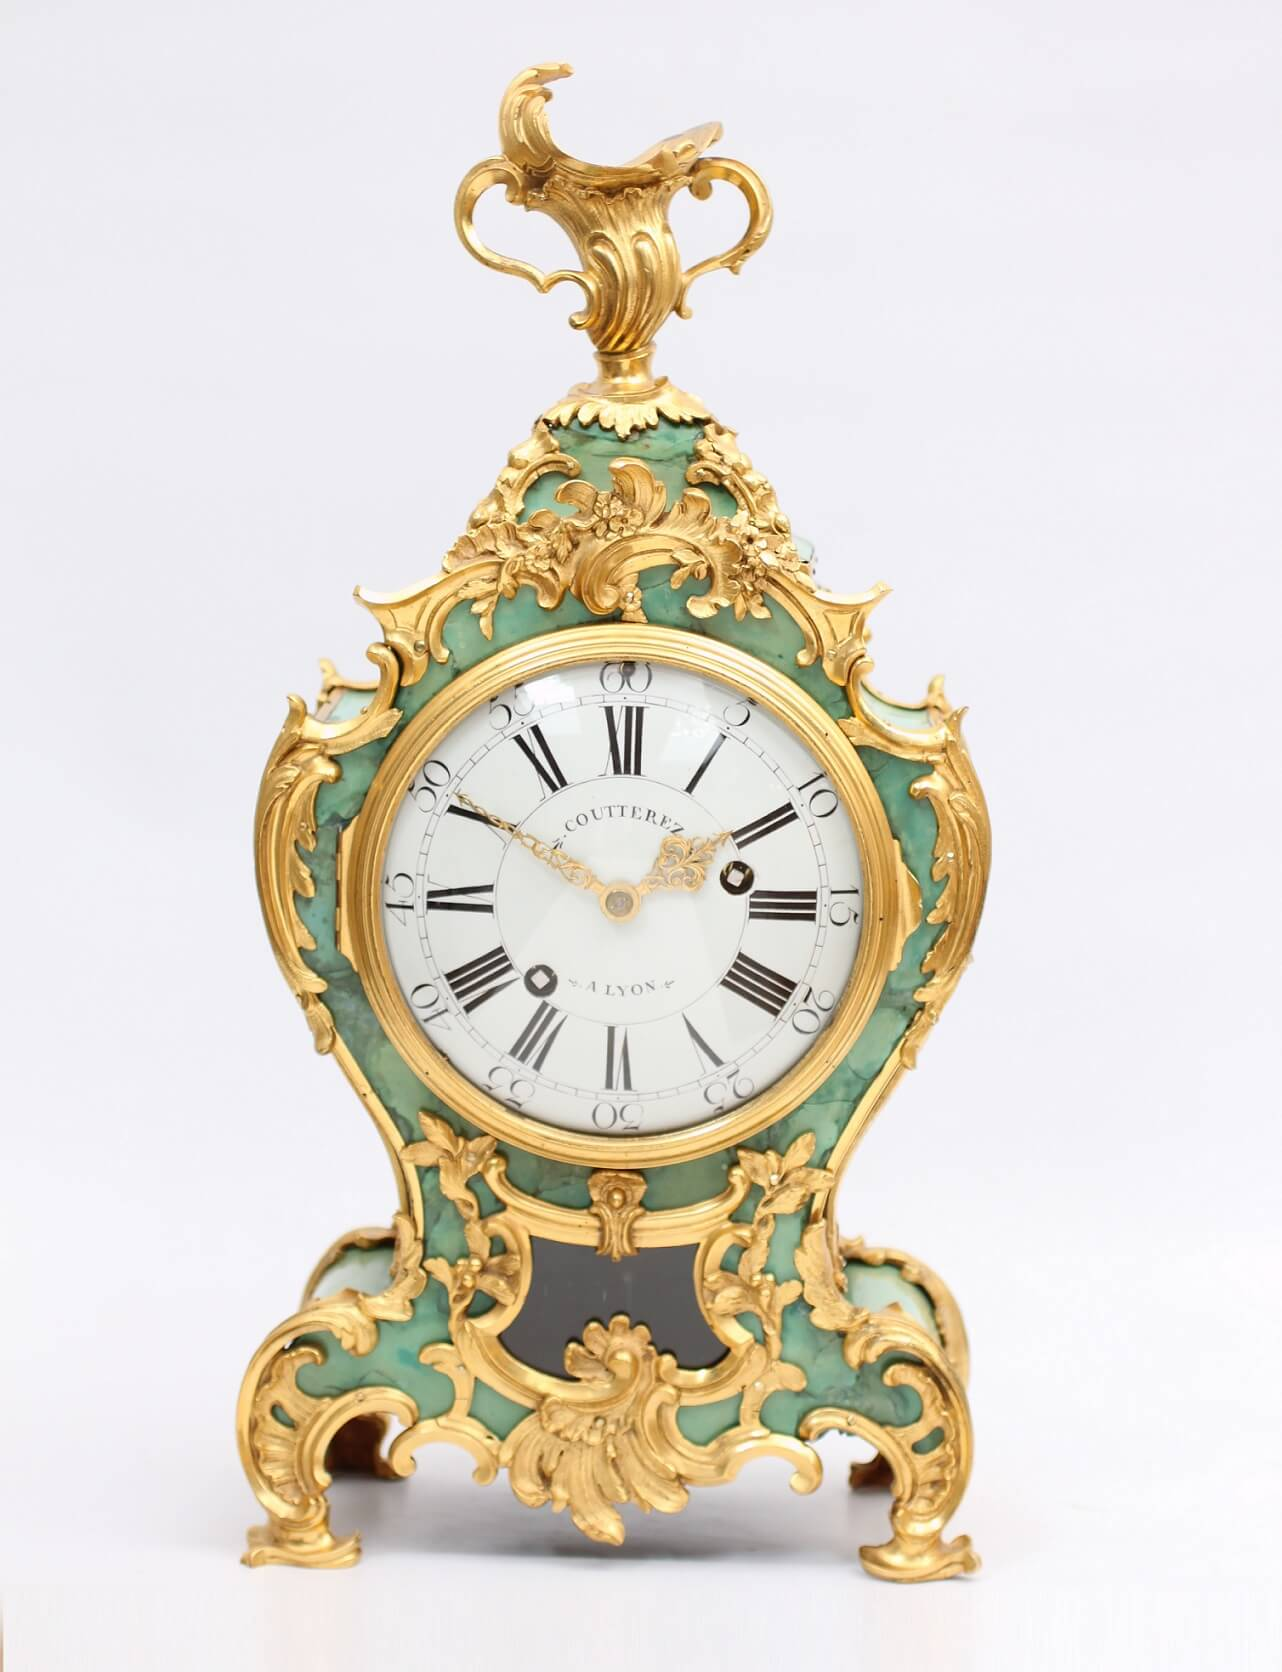 French-antique clock-Louis XV-corne verte-braket clock-cartel-miniature-ormolu